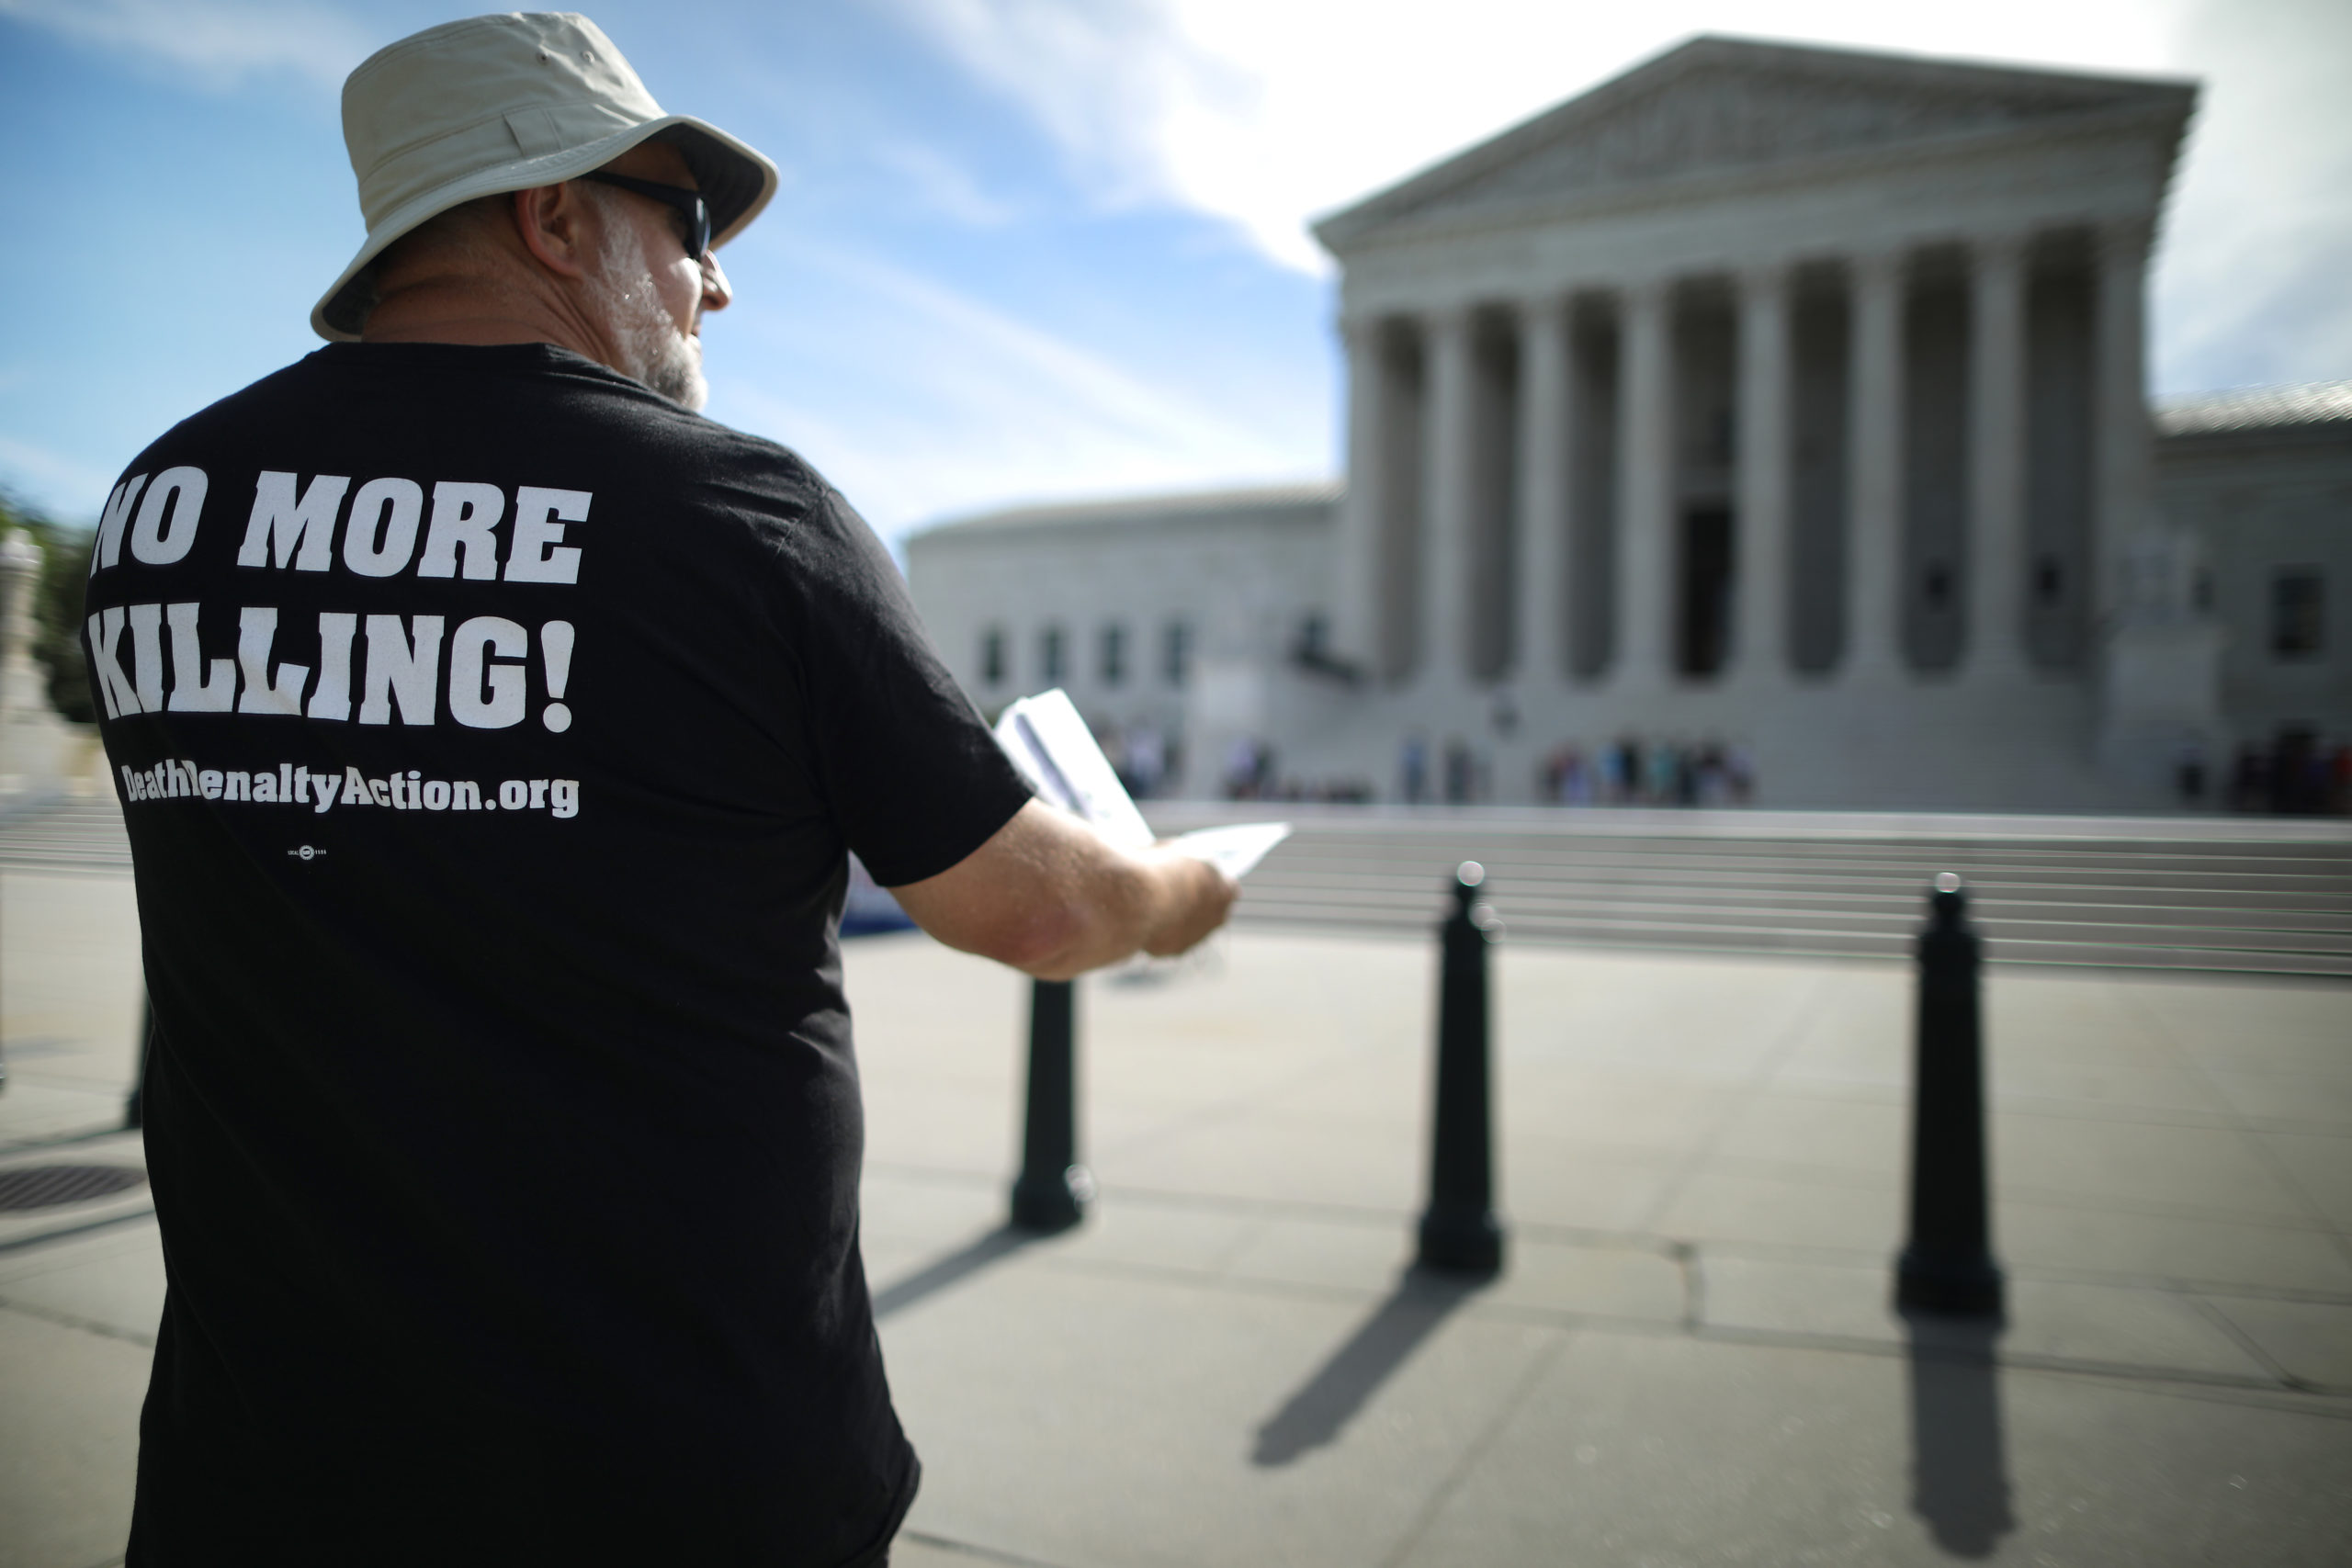 Abraham Bonowitz of Columbus, Ohio, joins fellow members of the Abolitionist Action Committee during an annual protest and hunger strike against the death penalty outside the U.S. Supreme Court July 01, 2019 in Washington, DC. (Photo by Chip Somodevilla/Getty Images)